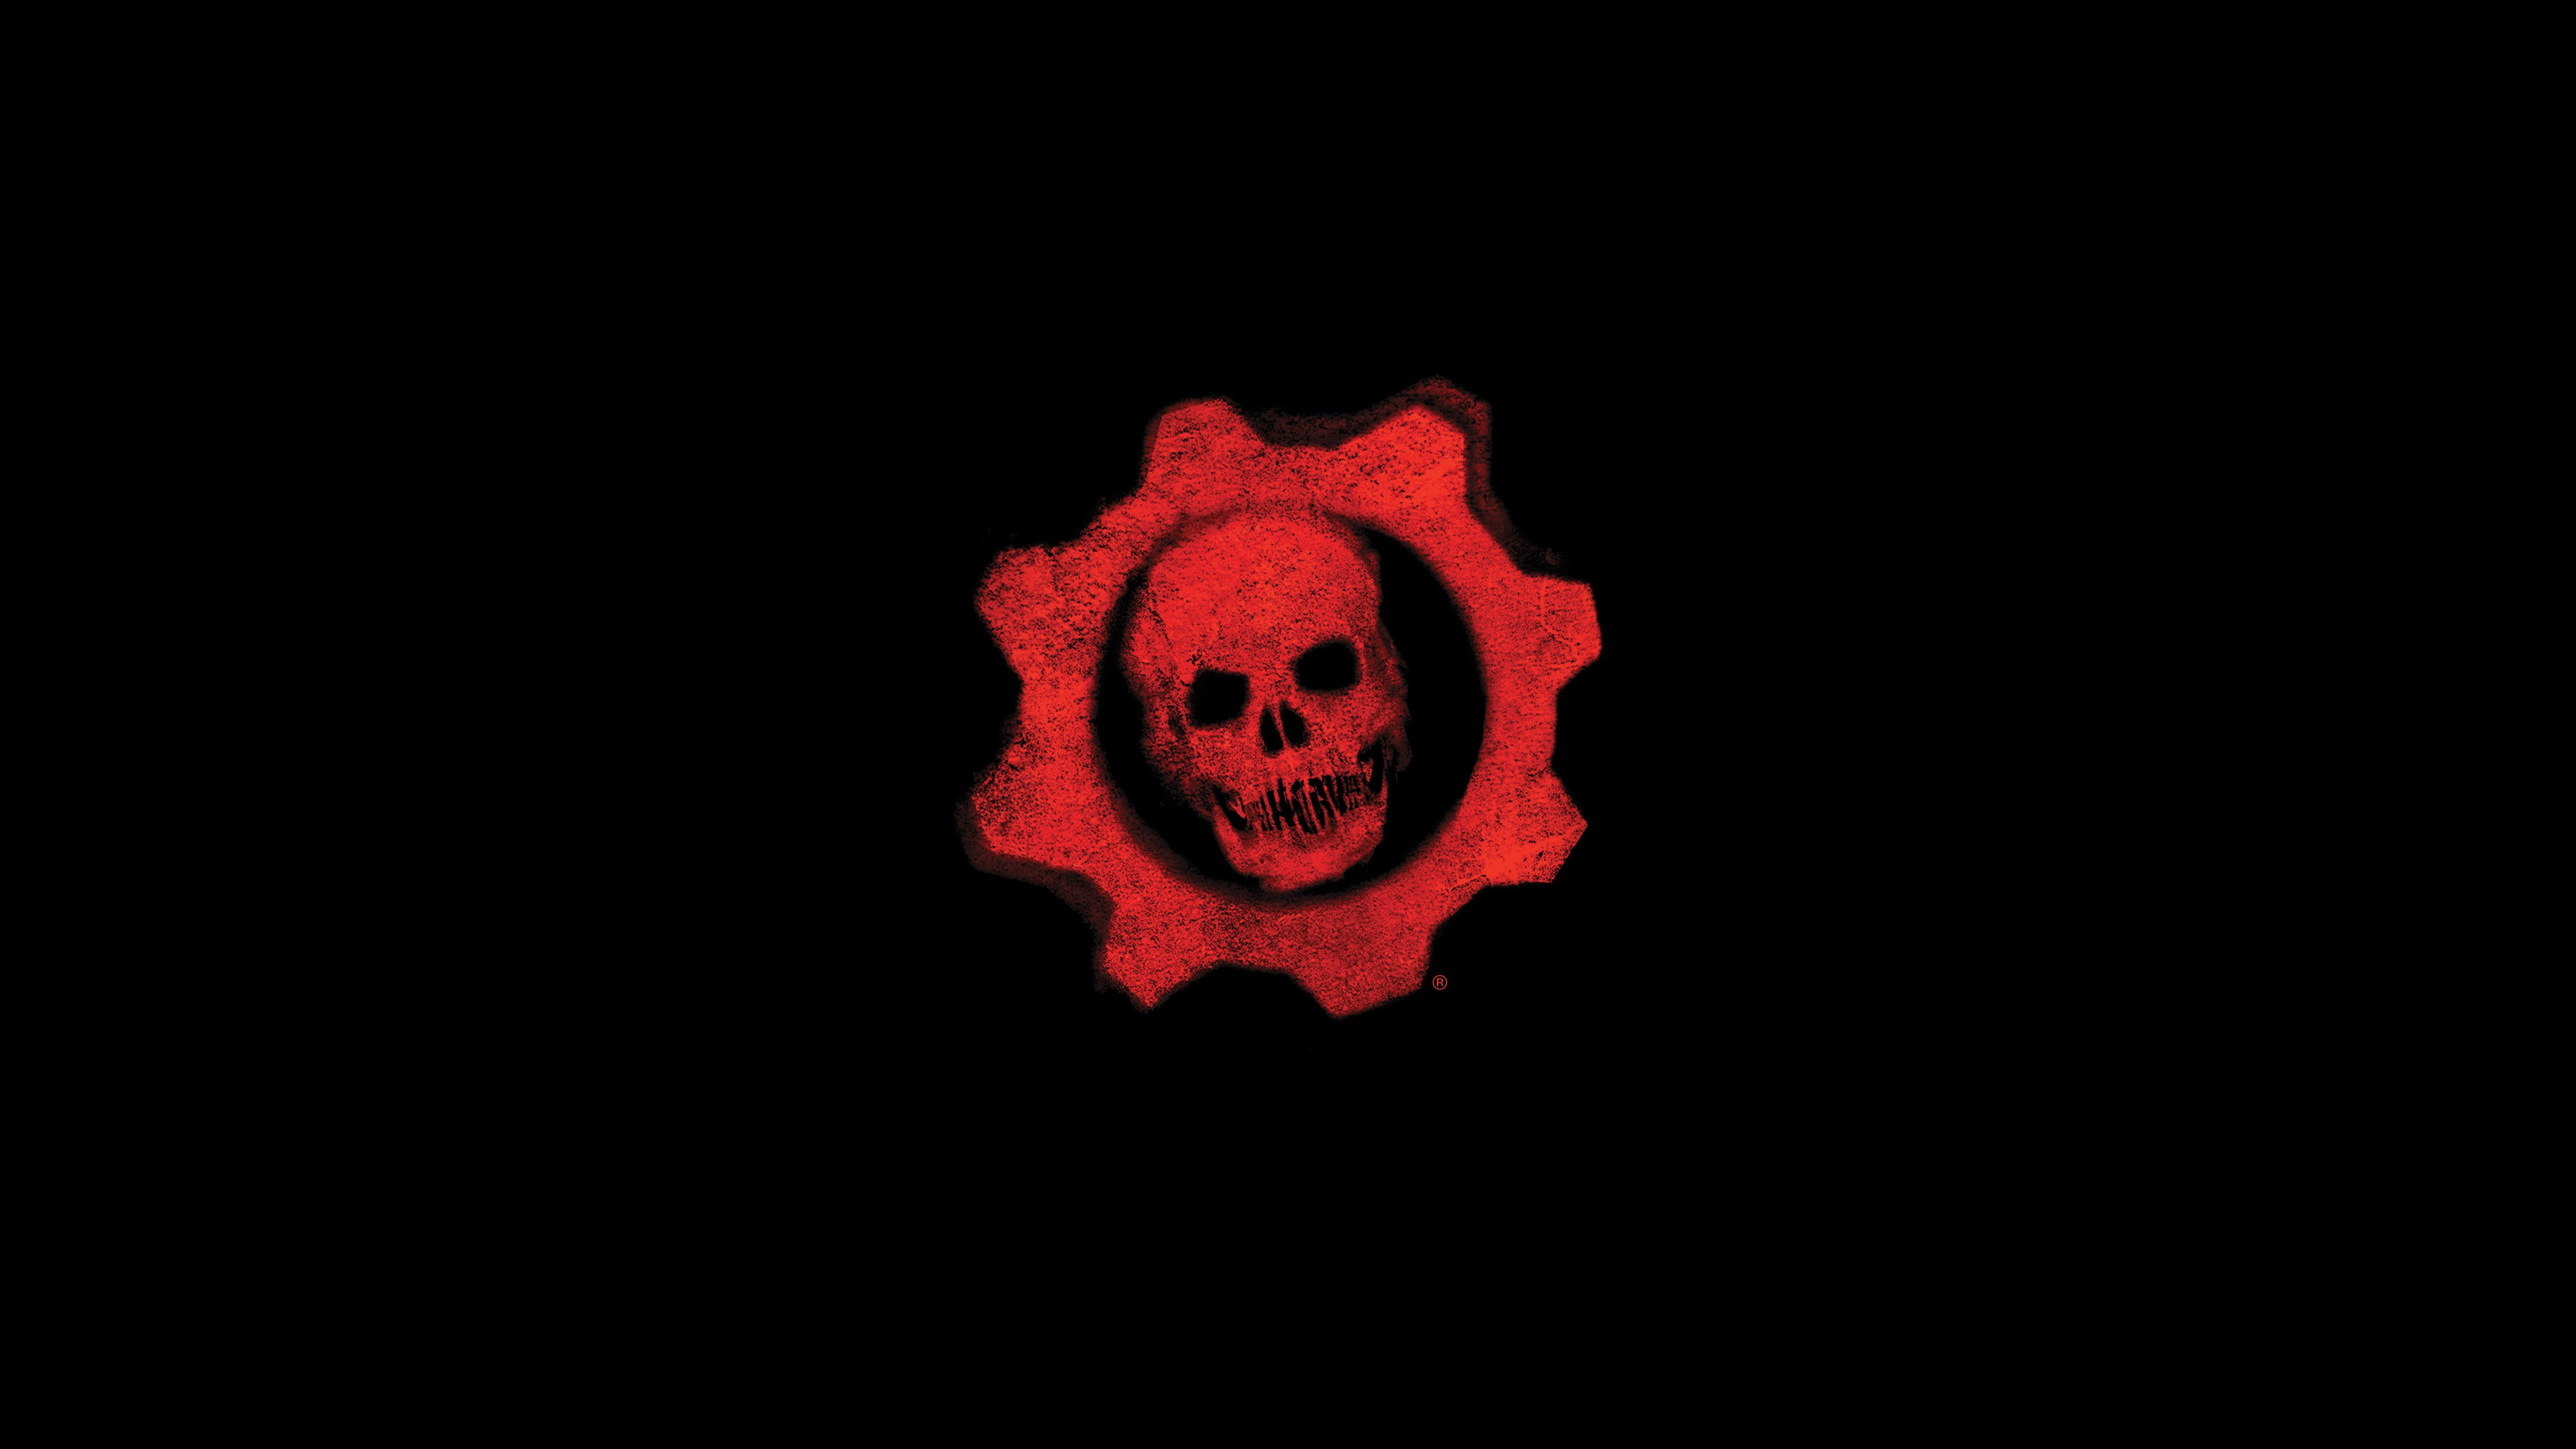 gears of war ultimate edition wallpaper 4k